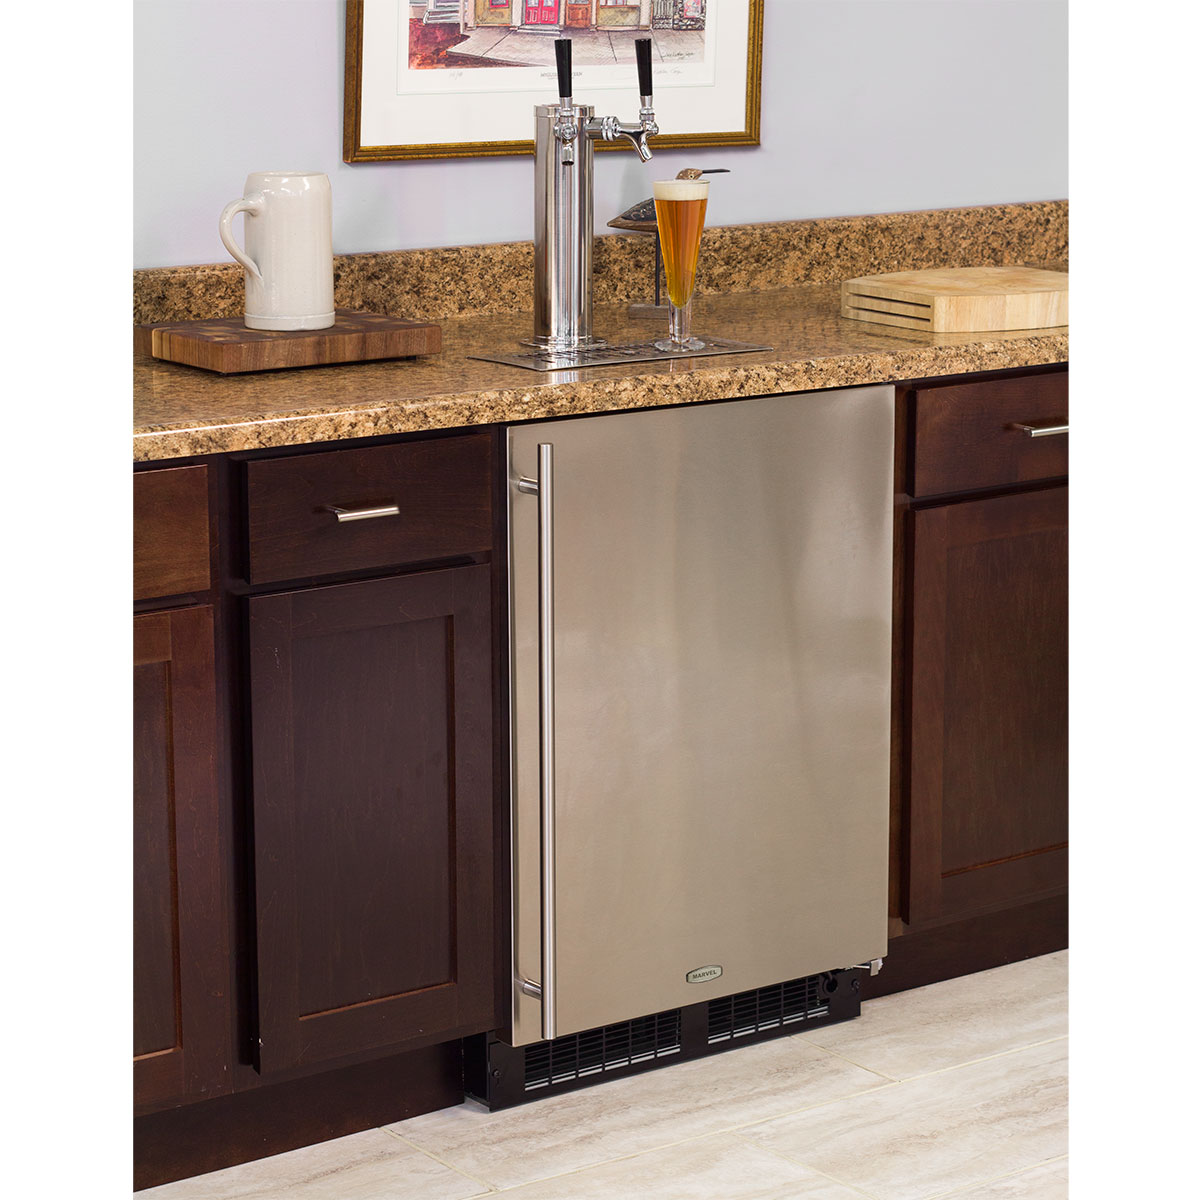 Marvel Built-In Indoor Twin Tap Beer Dispenser- Solid Panel Overlay Ready Door Integrated Right Hinge